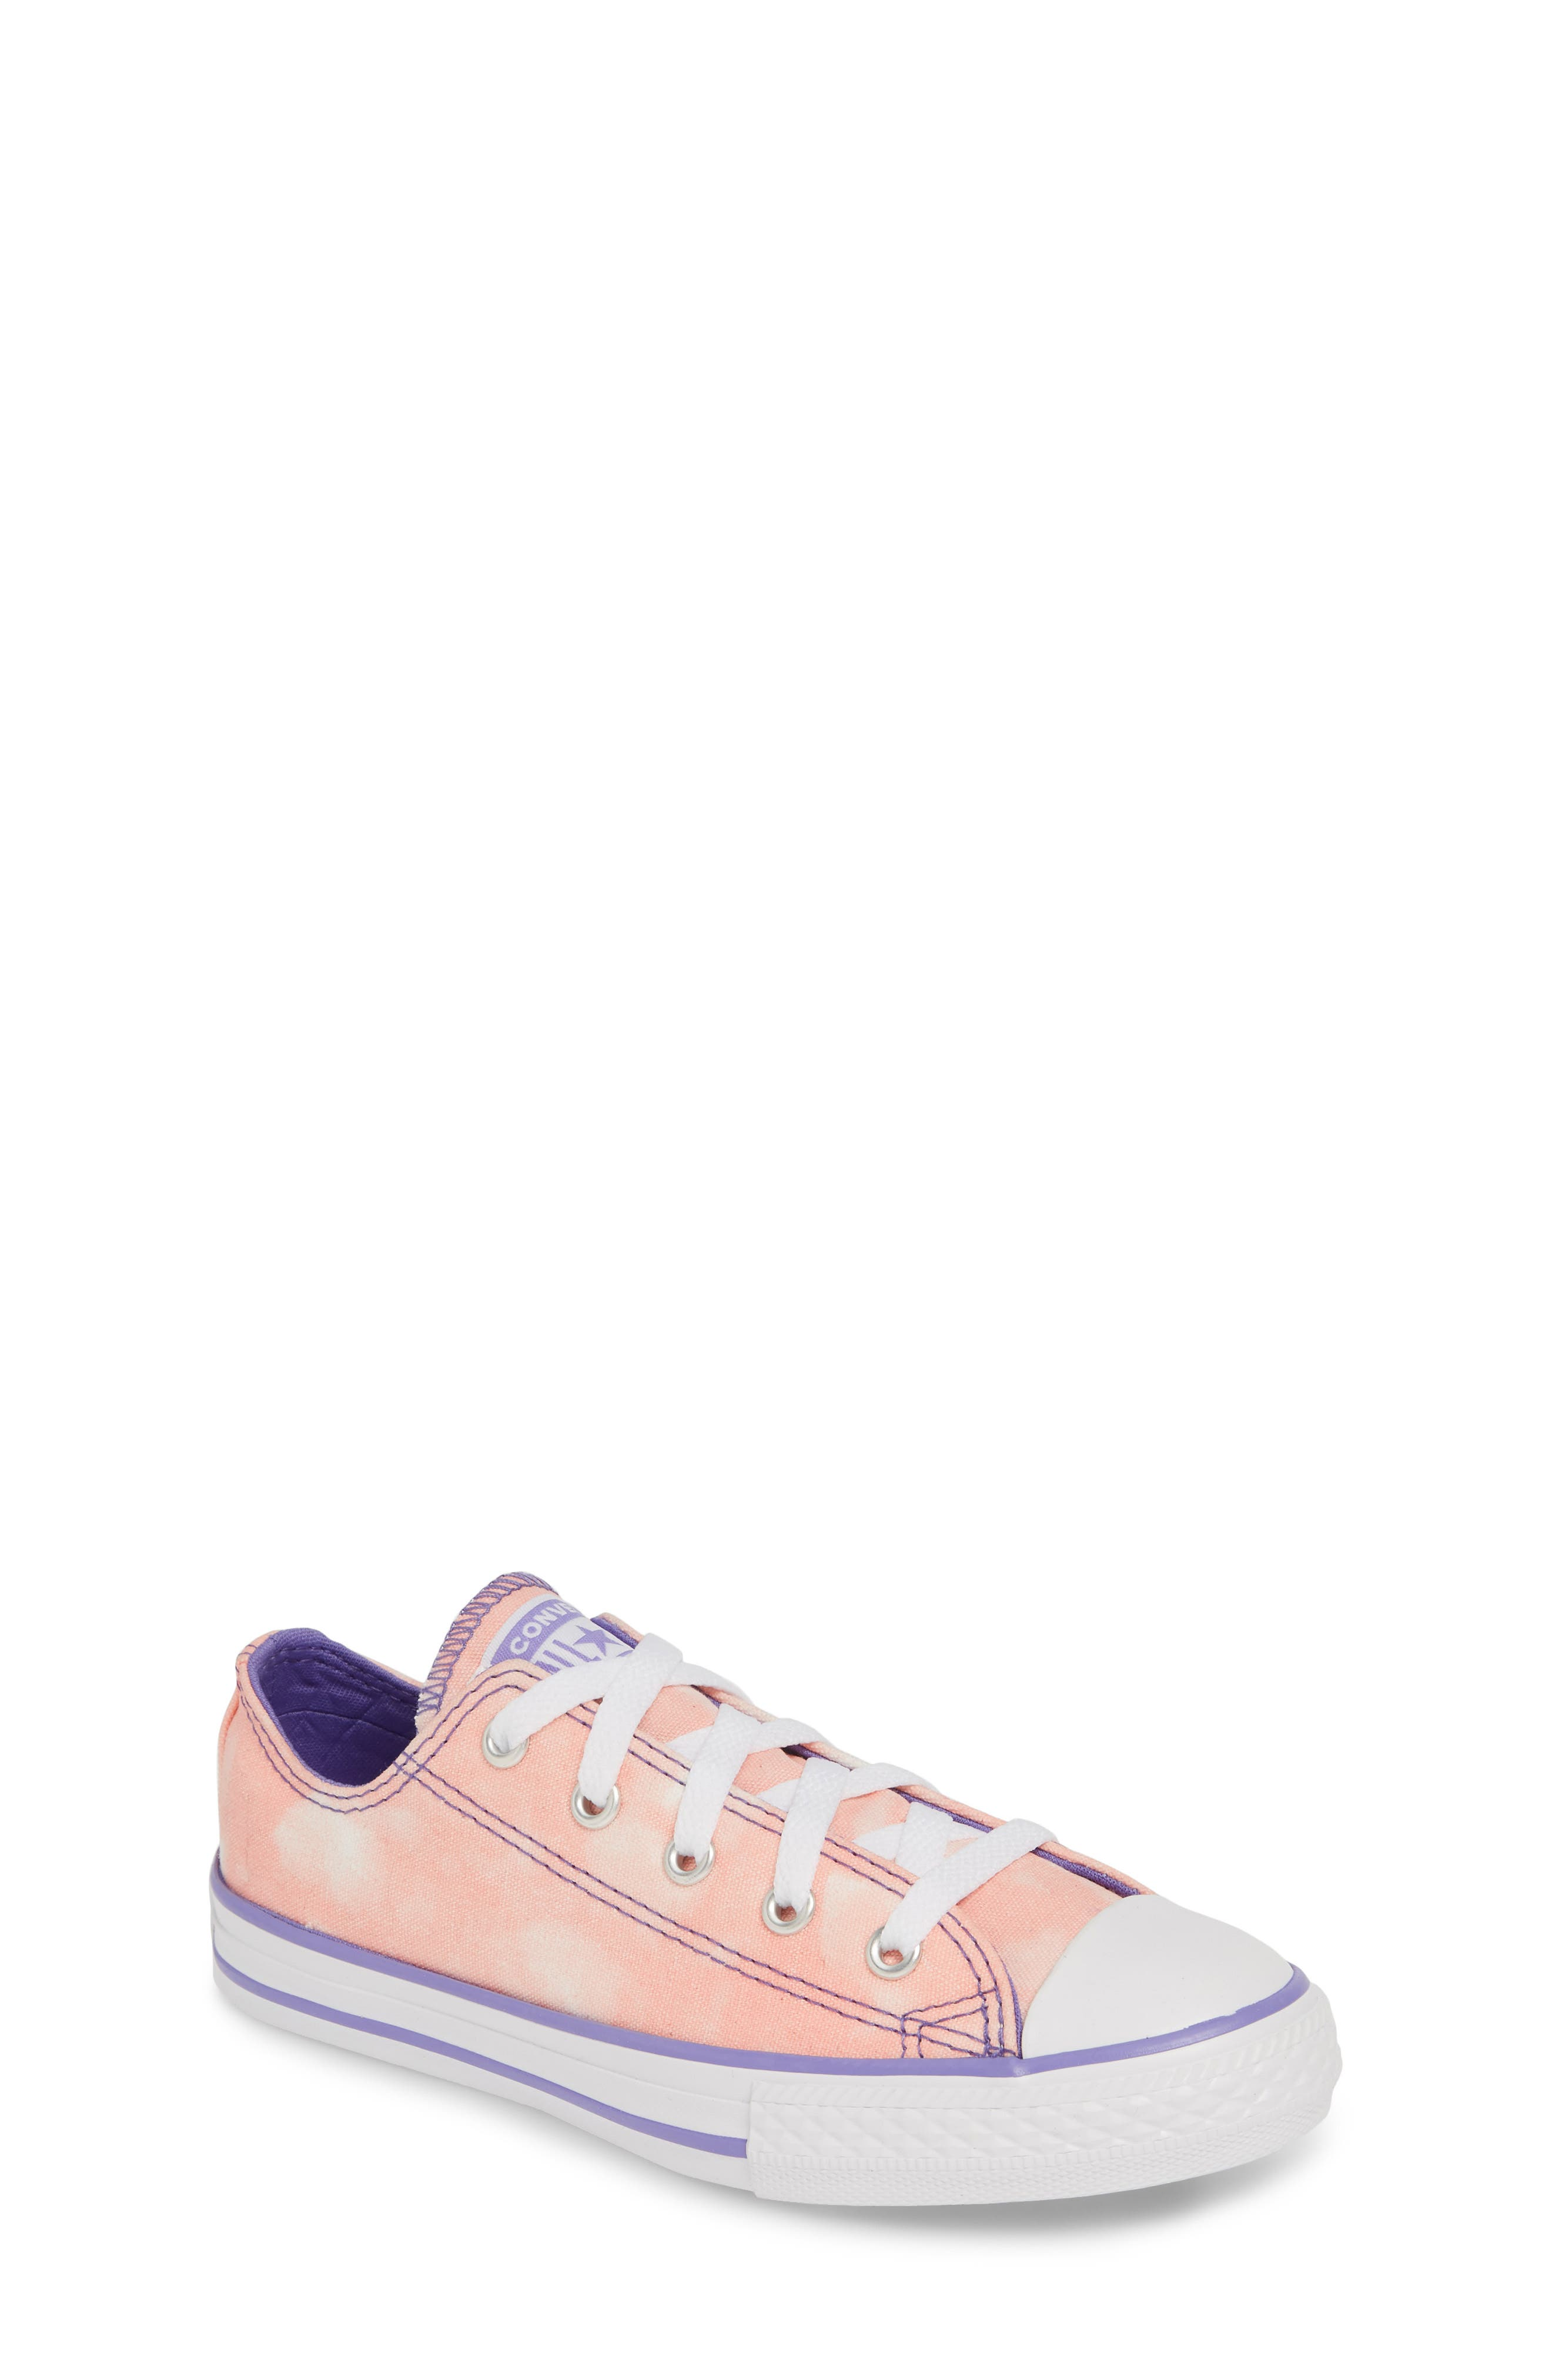 Toddler Converse Chuck Taylor All Star Low Top Sneaker Size 12 M  Pink